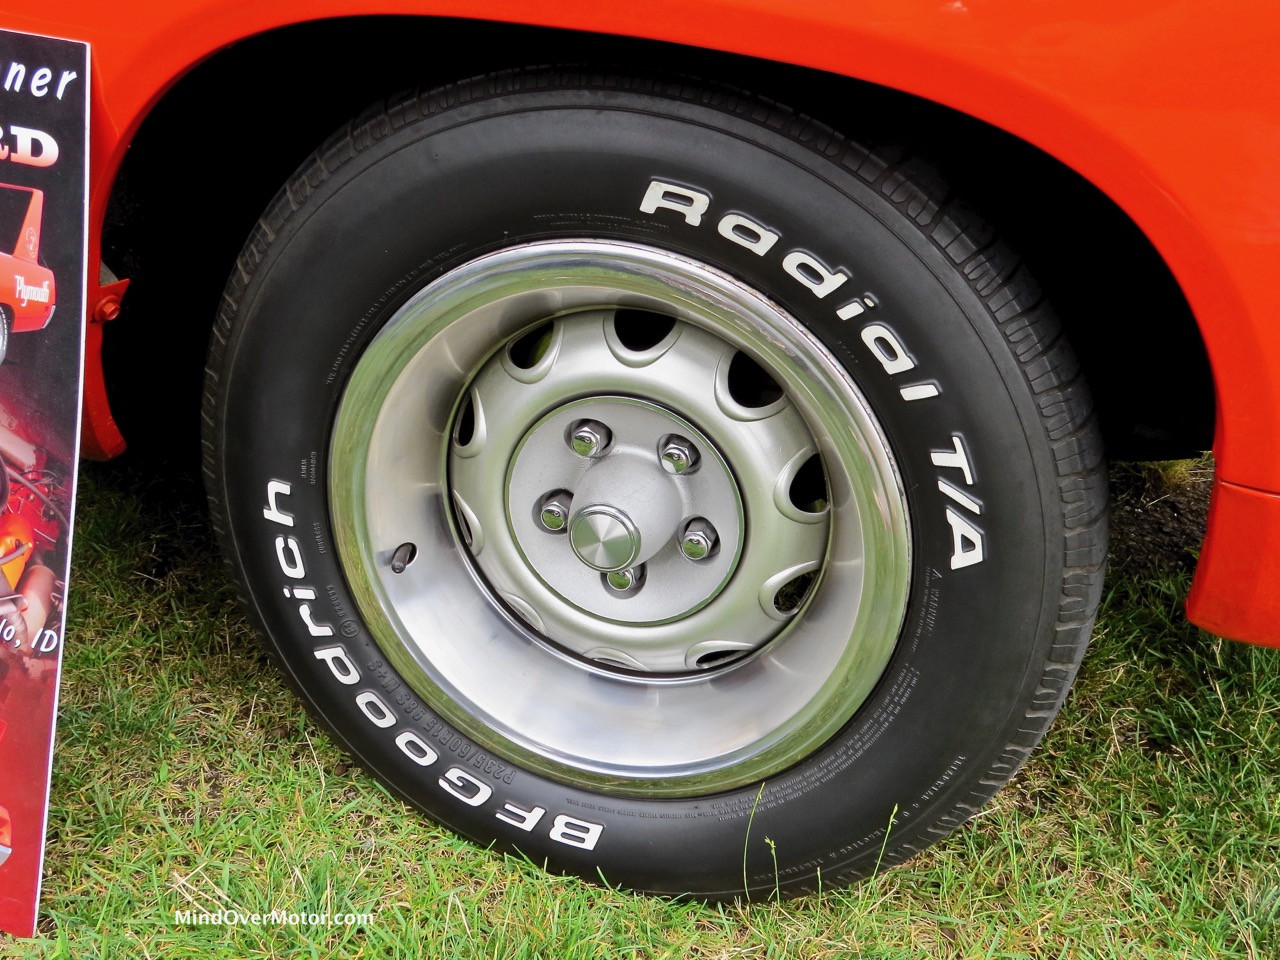 1970 Torred Superbird Tire and Wheel